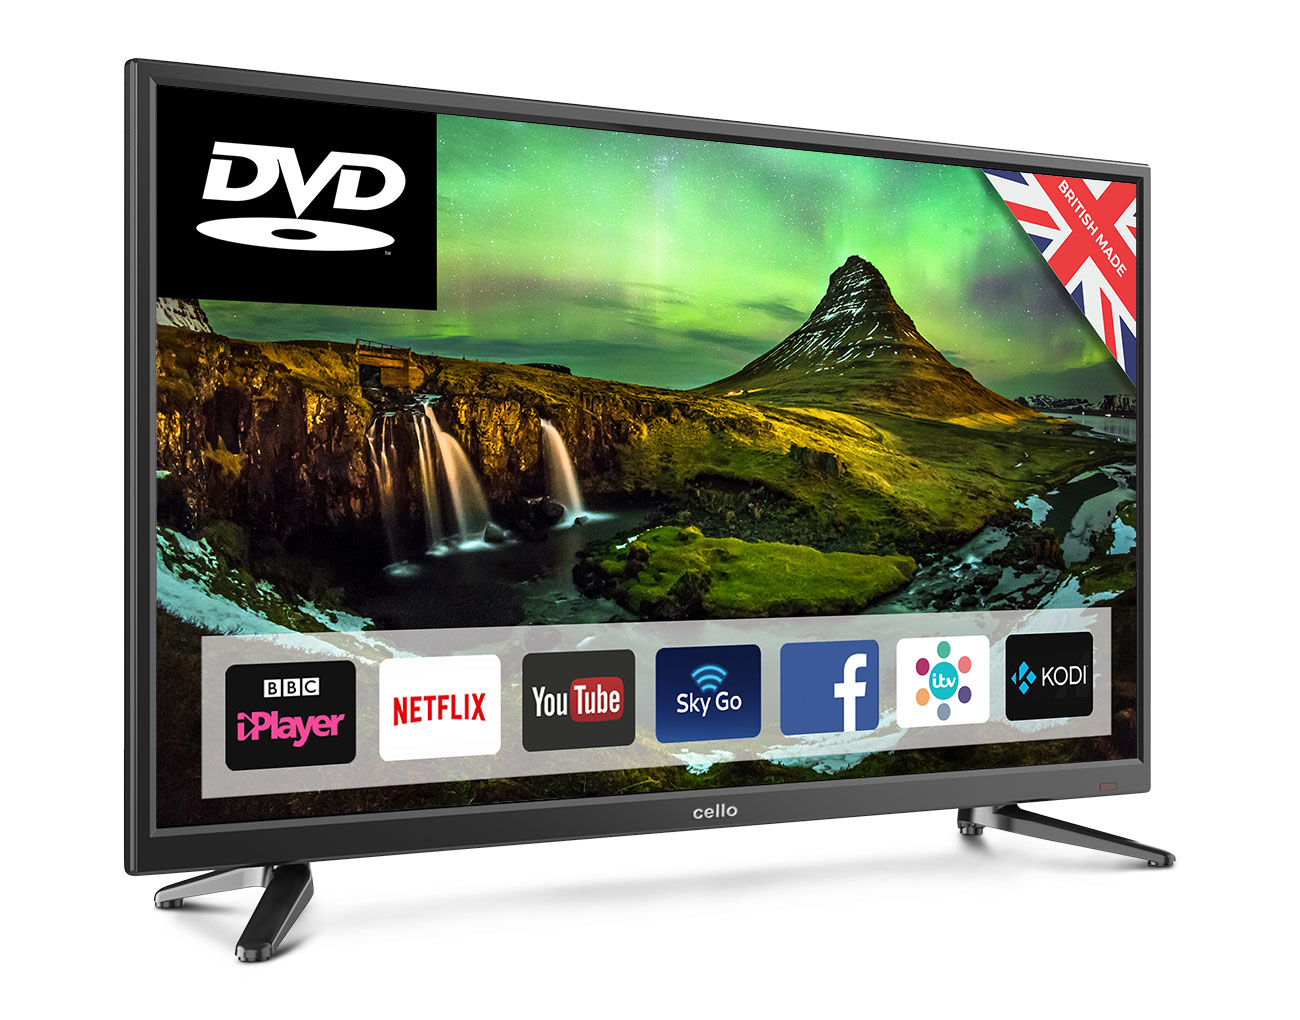 32IN LED FHD 1366X768 16:9 C32SFSD 2400:1 HDMI              IN